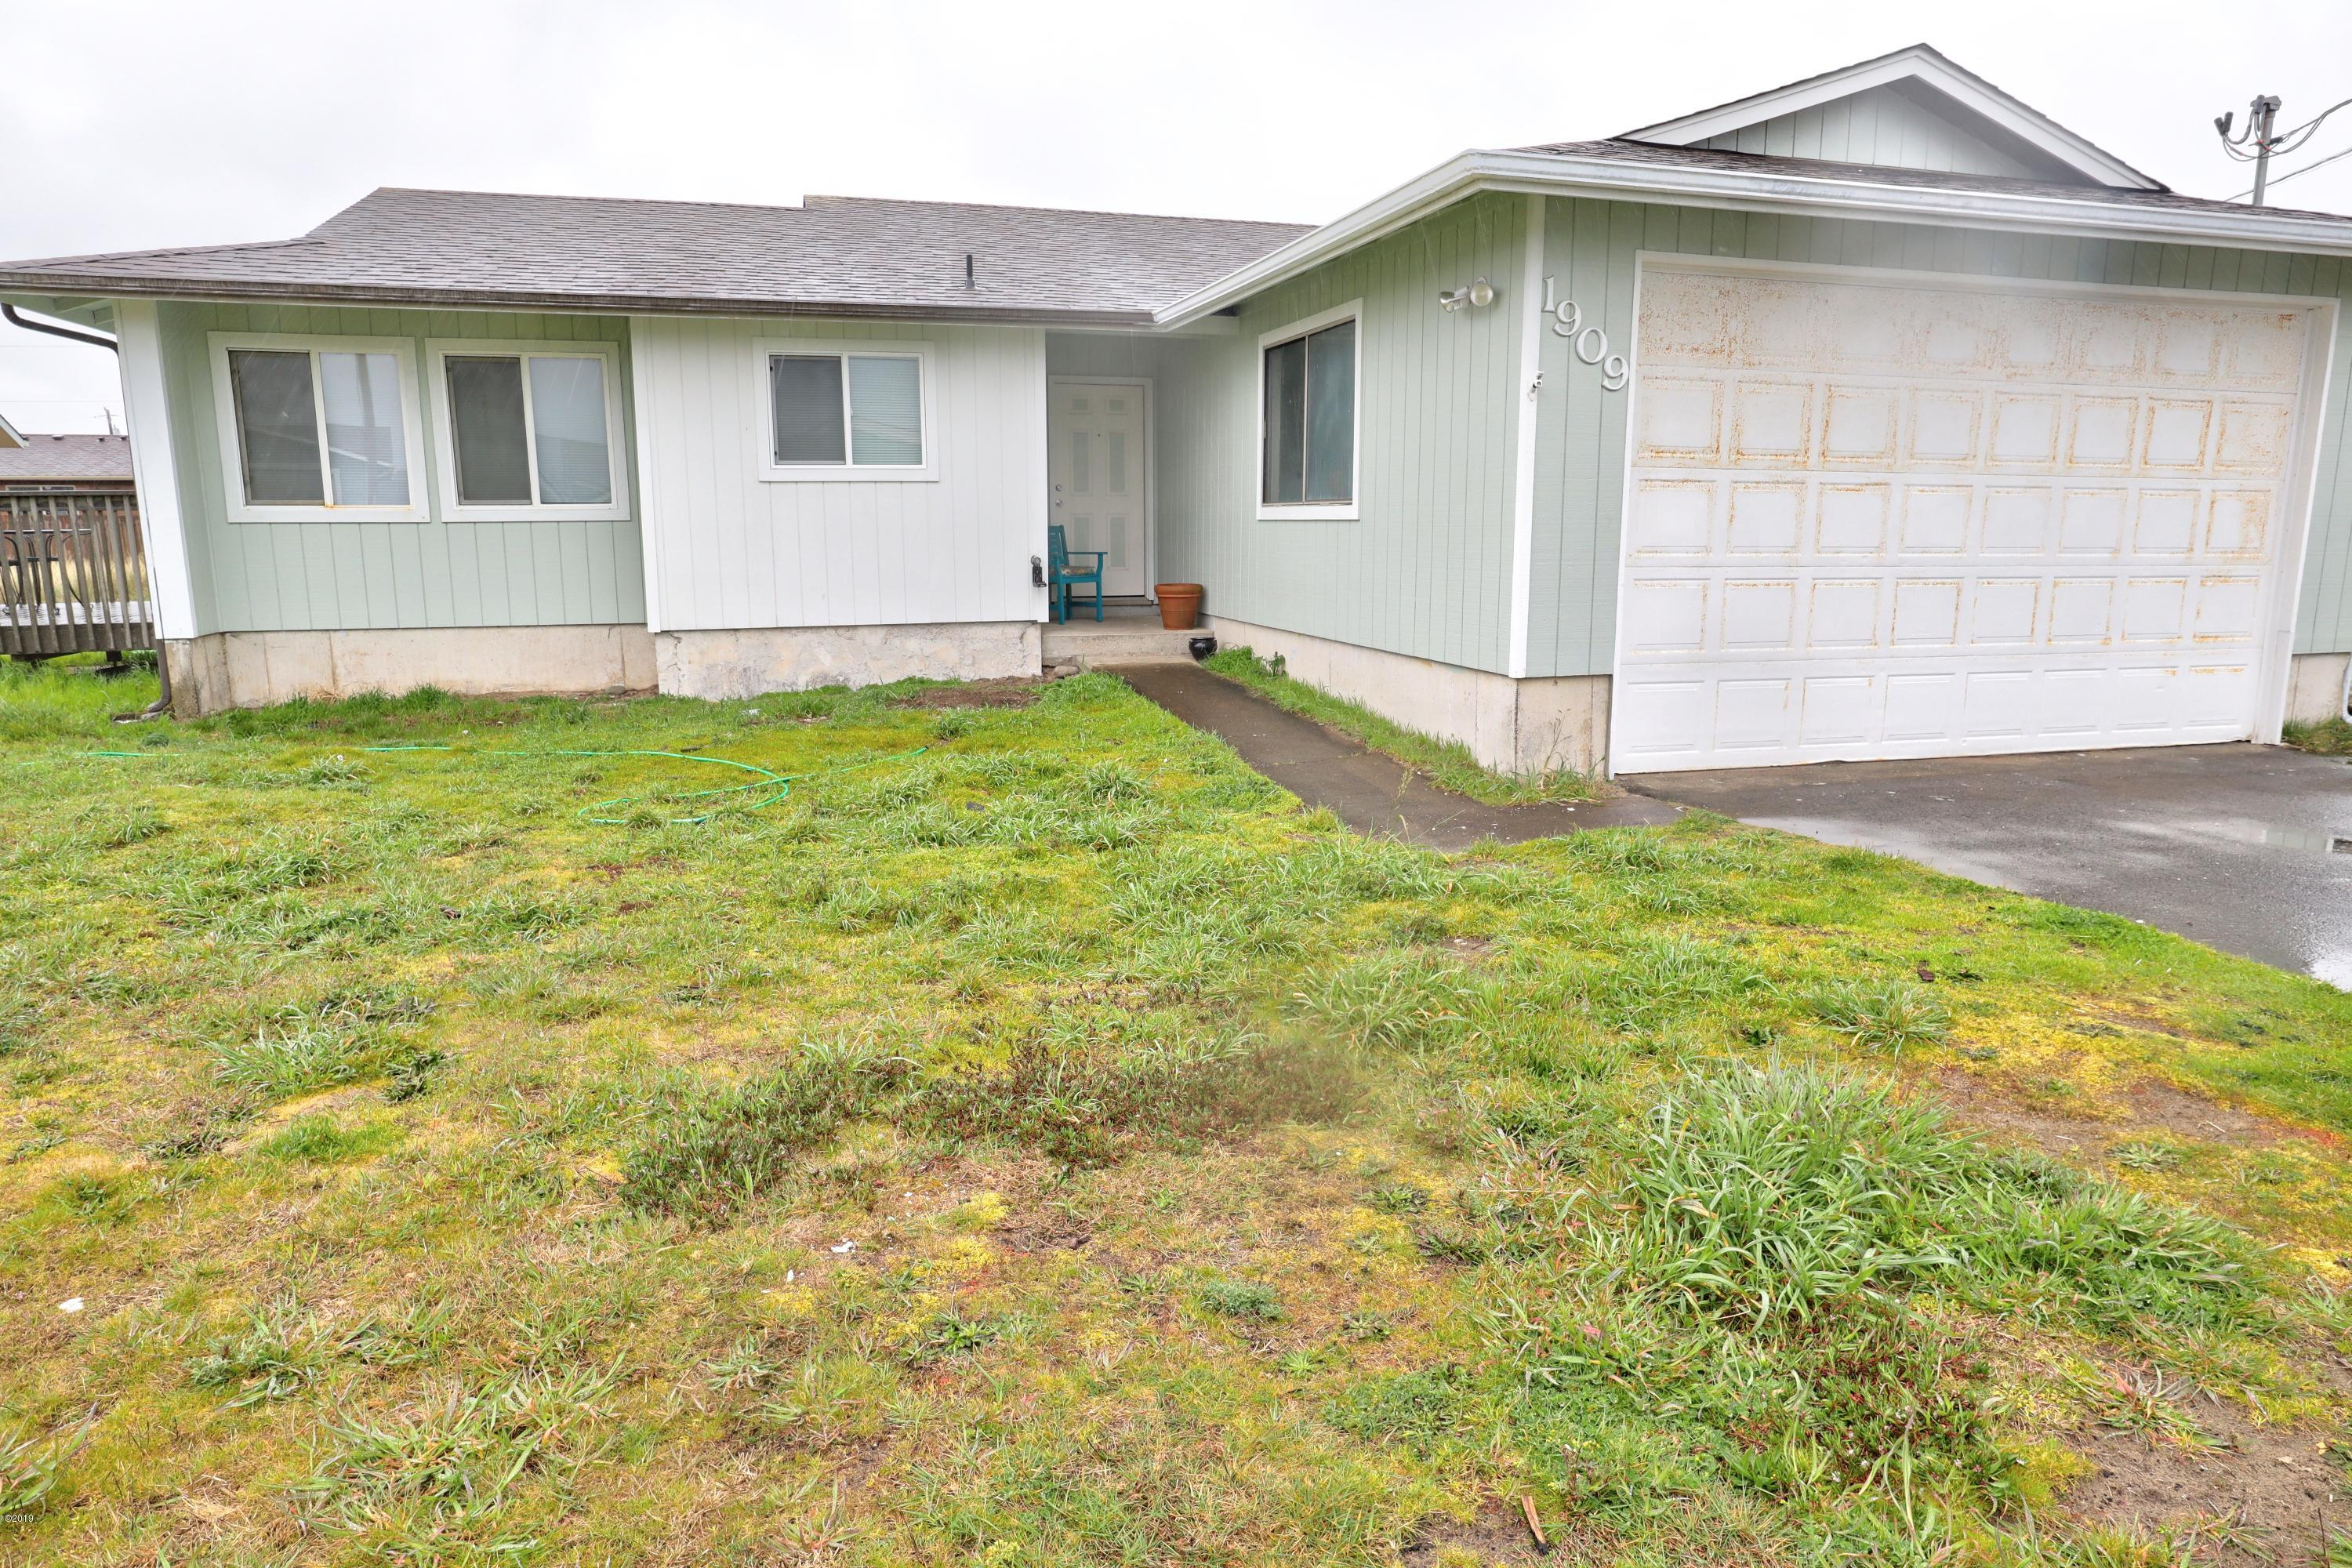 1909 NW Marineview Dr, Waldport, OR 97394 - Front of House